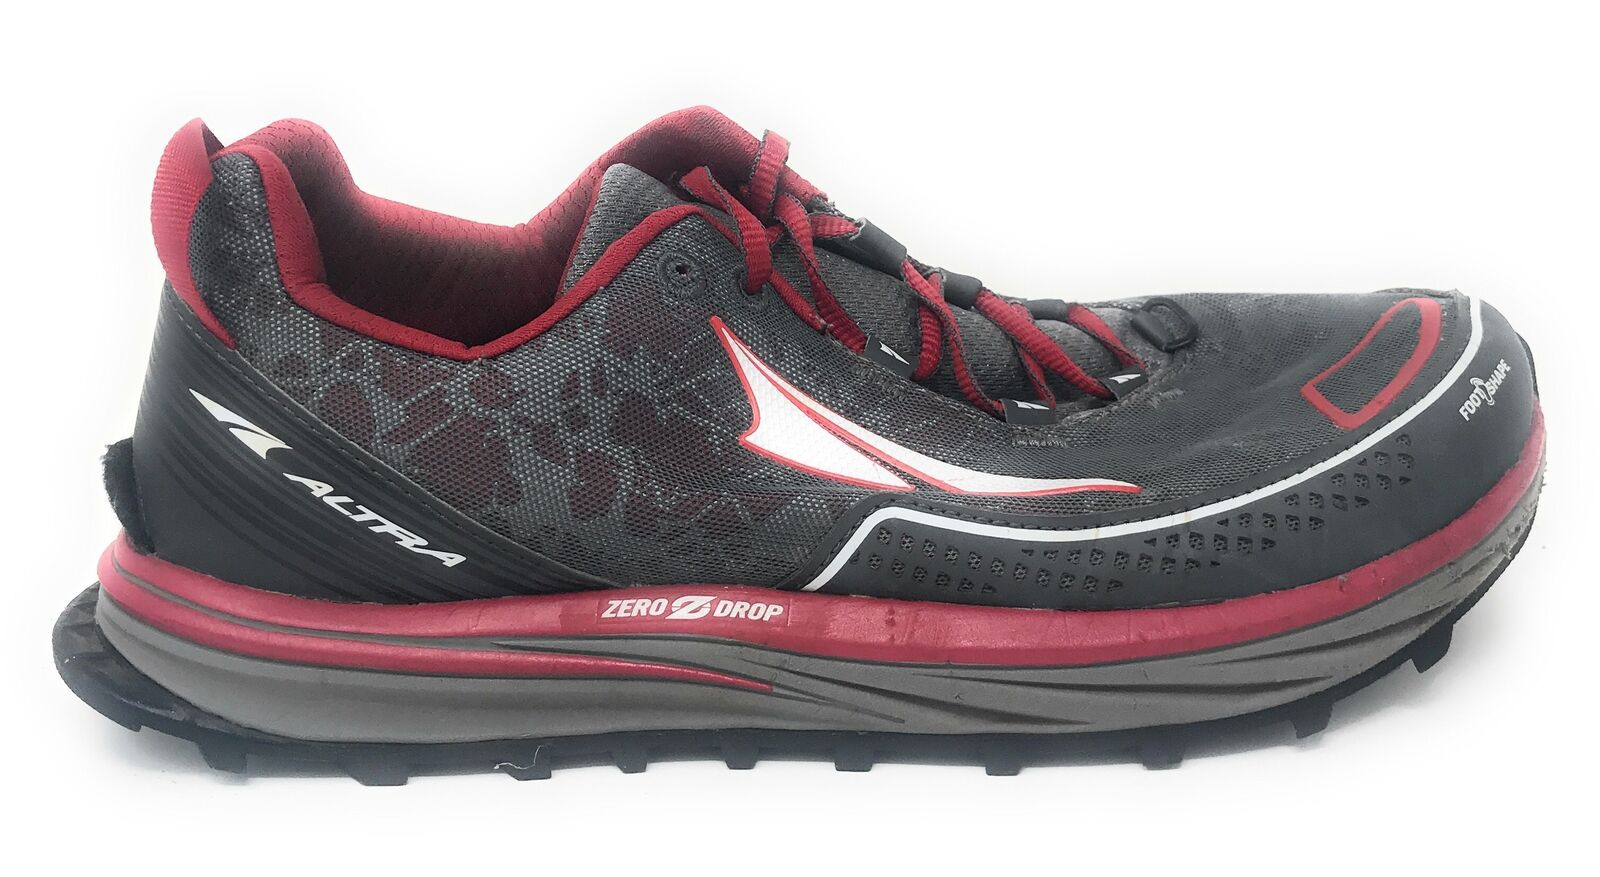 Altra Men's Timp Trail Running shoes, Red - 10 D(M) US Used